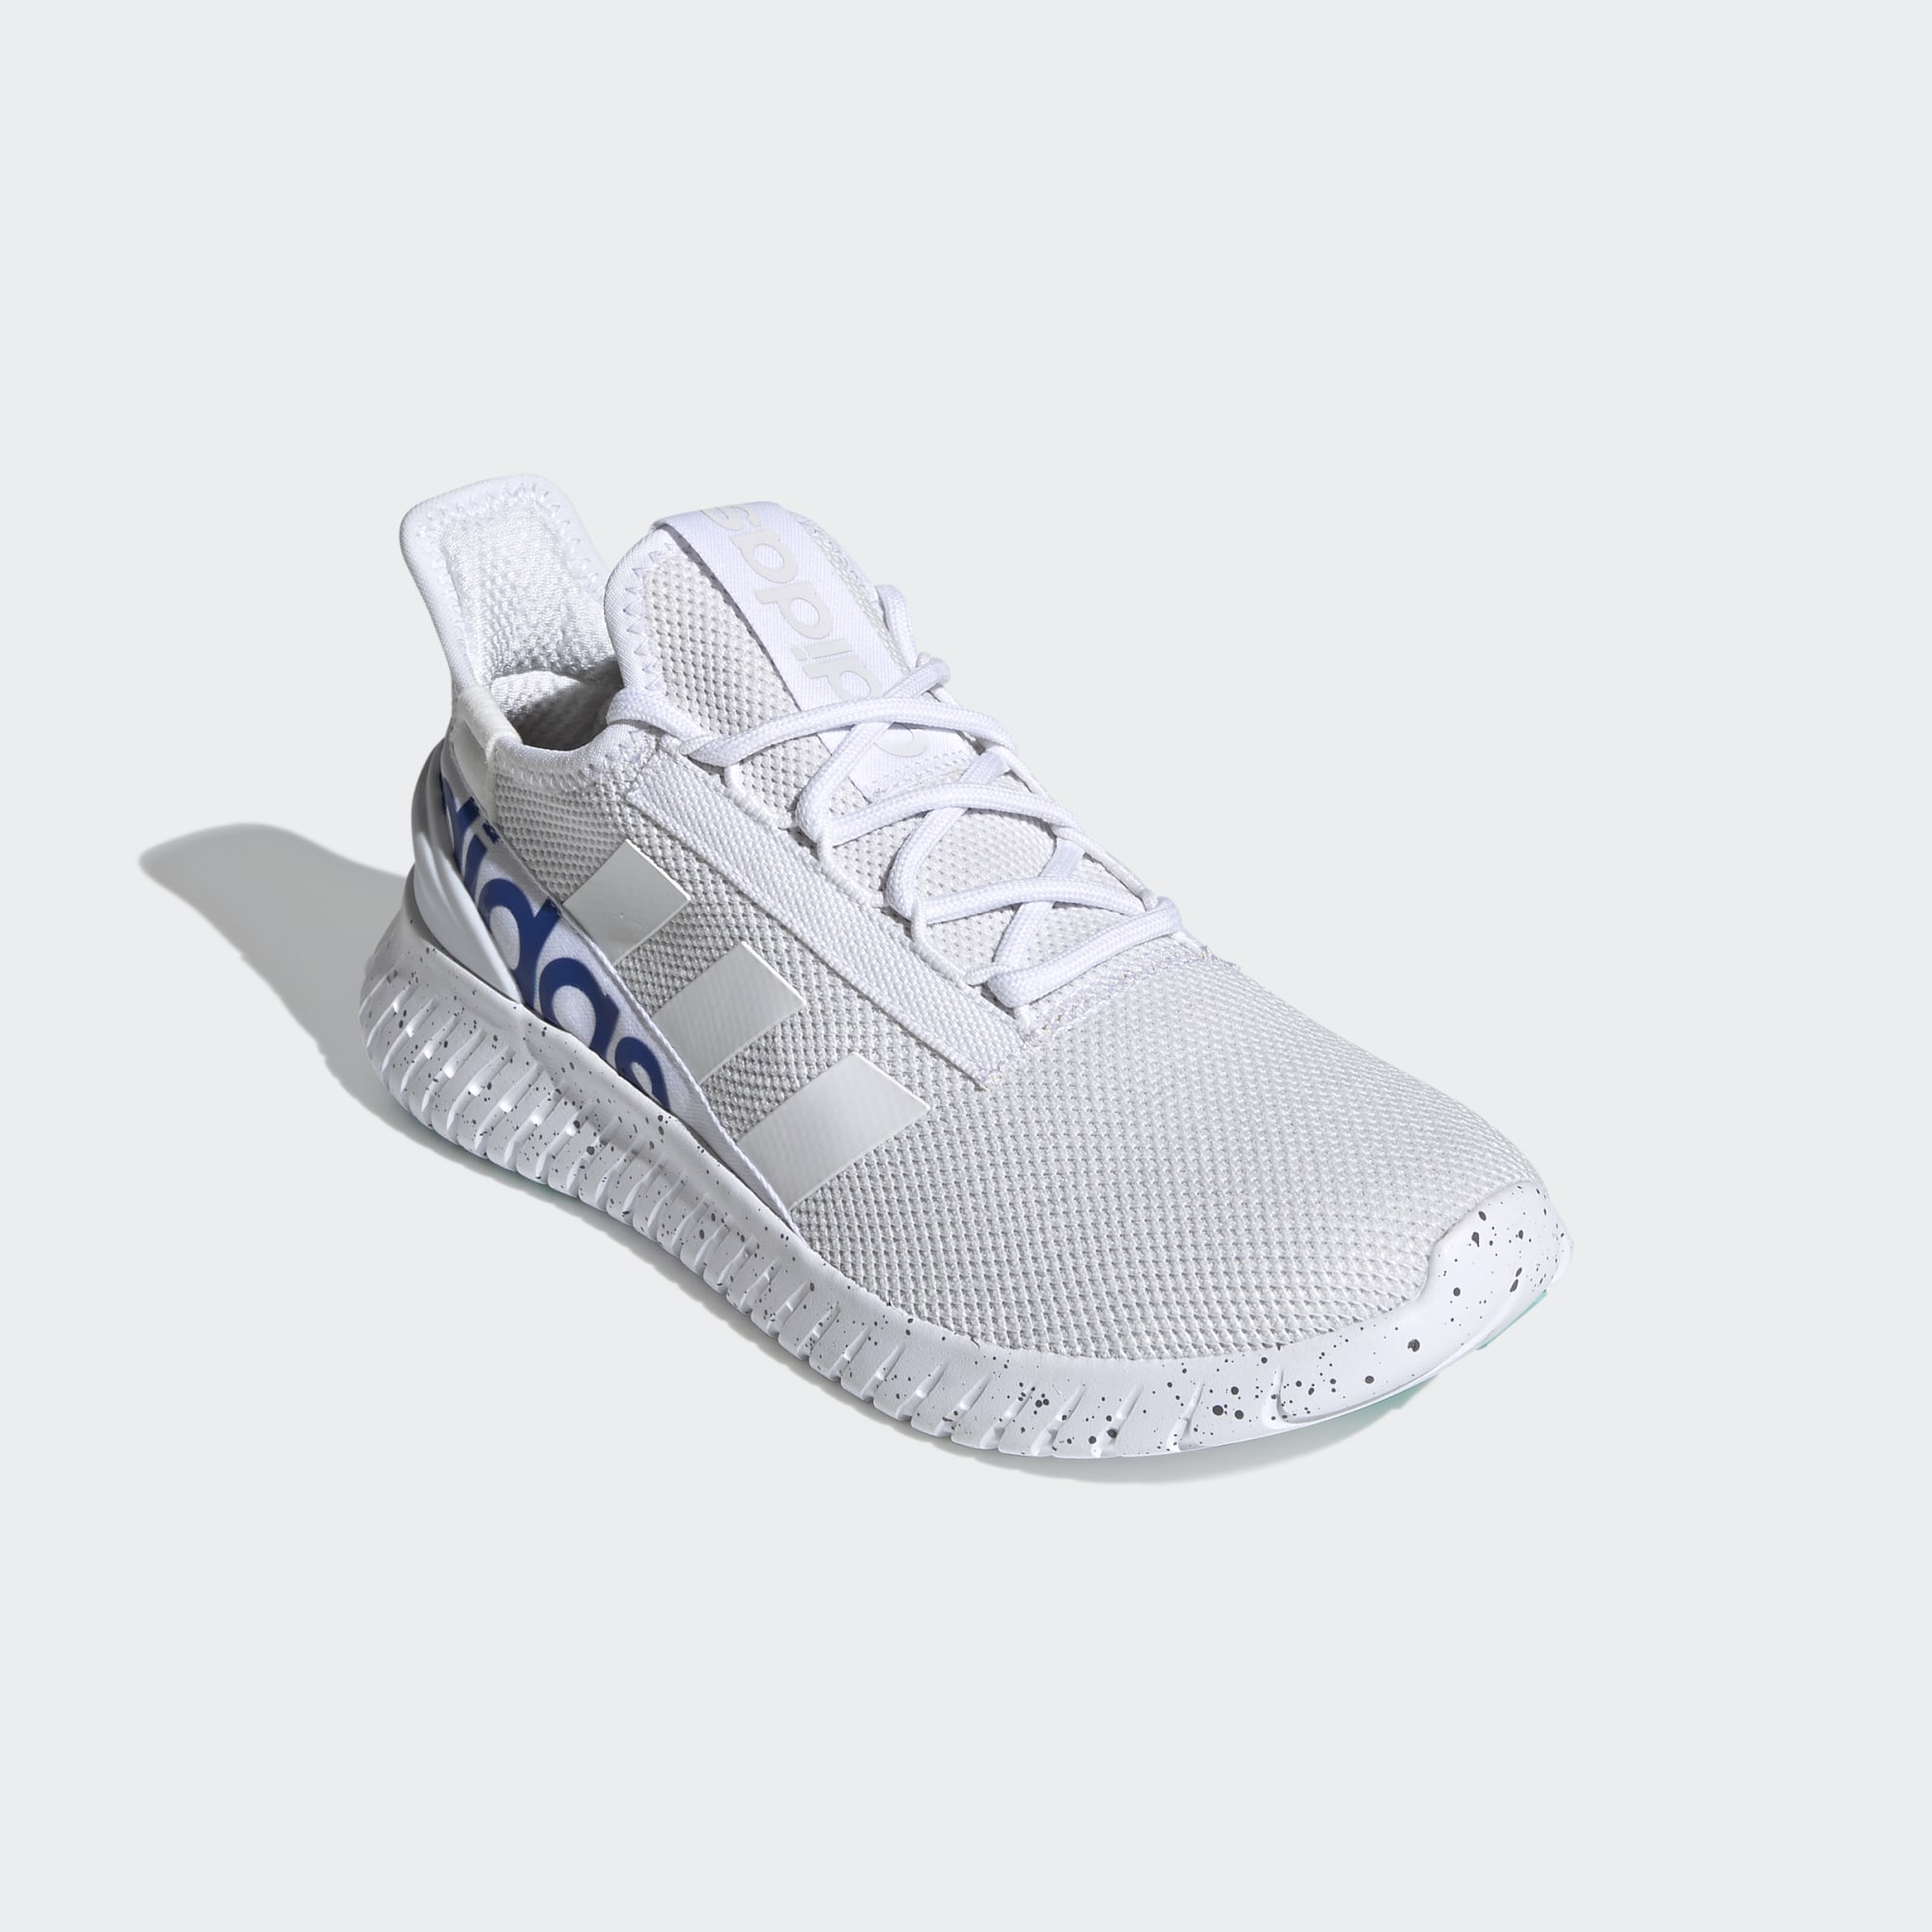 Kaptir_2.0_Shoes_White_H68090_04_standard.jpg